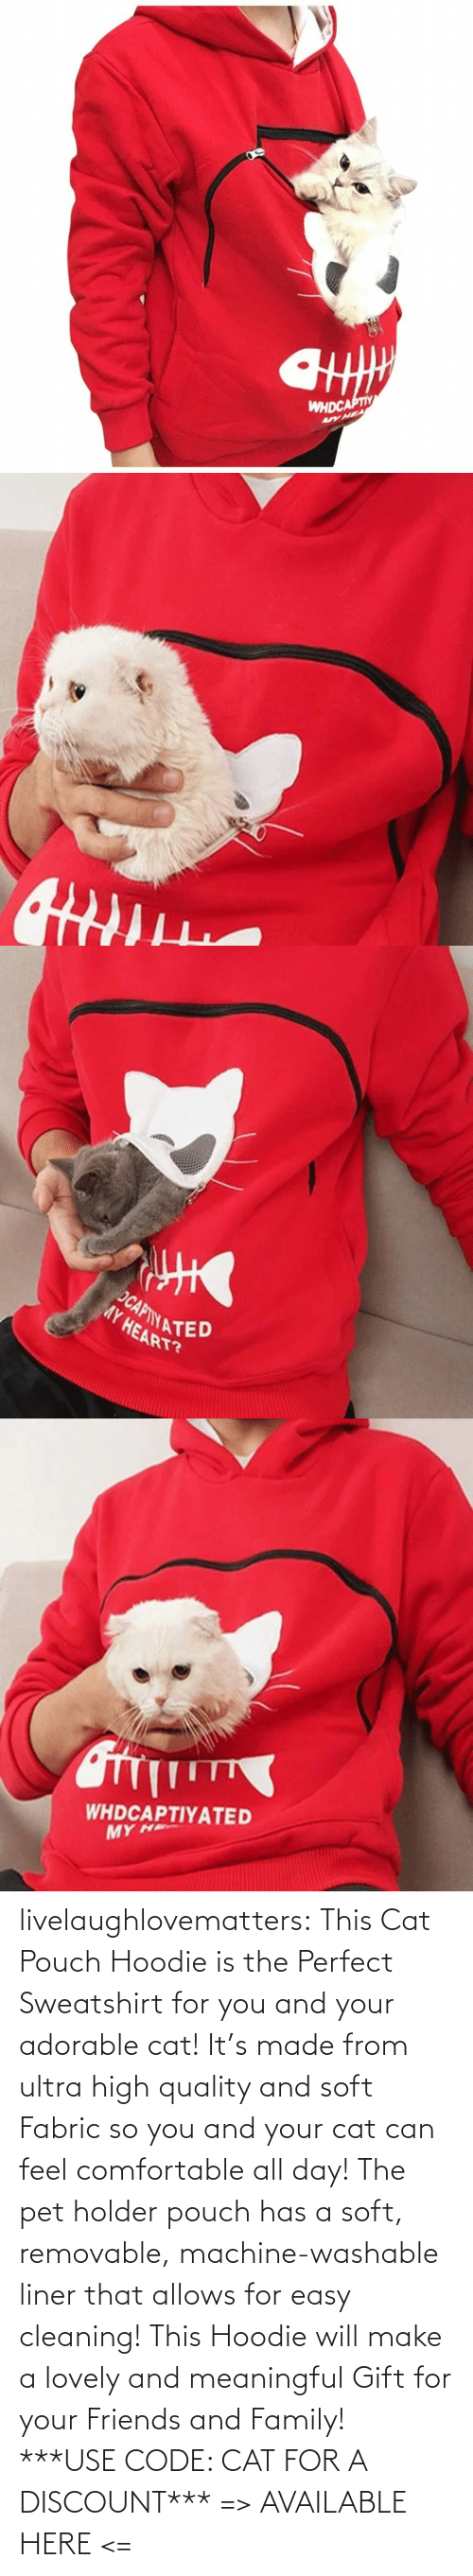 easy: livelaughlovematters: This Cat Pouch Hoodie is the Perfect Sweatshirt for you and your adorable cat! It's made from ultra high quality and soft Fabric so you and your cat can feel comfortable all day! The pet holder pouch has a soft, removable, machine-washable liner that allows for easy cleaning! This Hoodie will make a lovely and meaningful Gift for your Friends and Family!  ***USE CODE: CAT FOR A DISCOUNT*** => AVAILABLE HERE <=